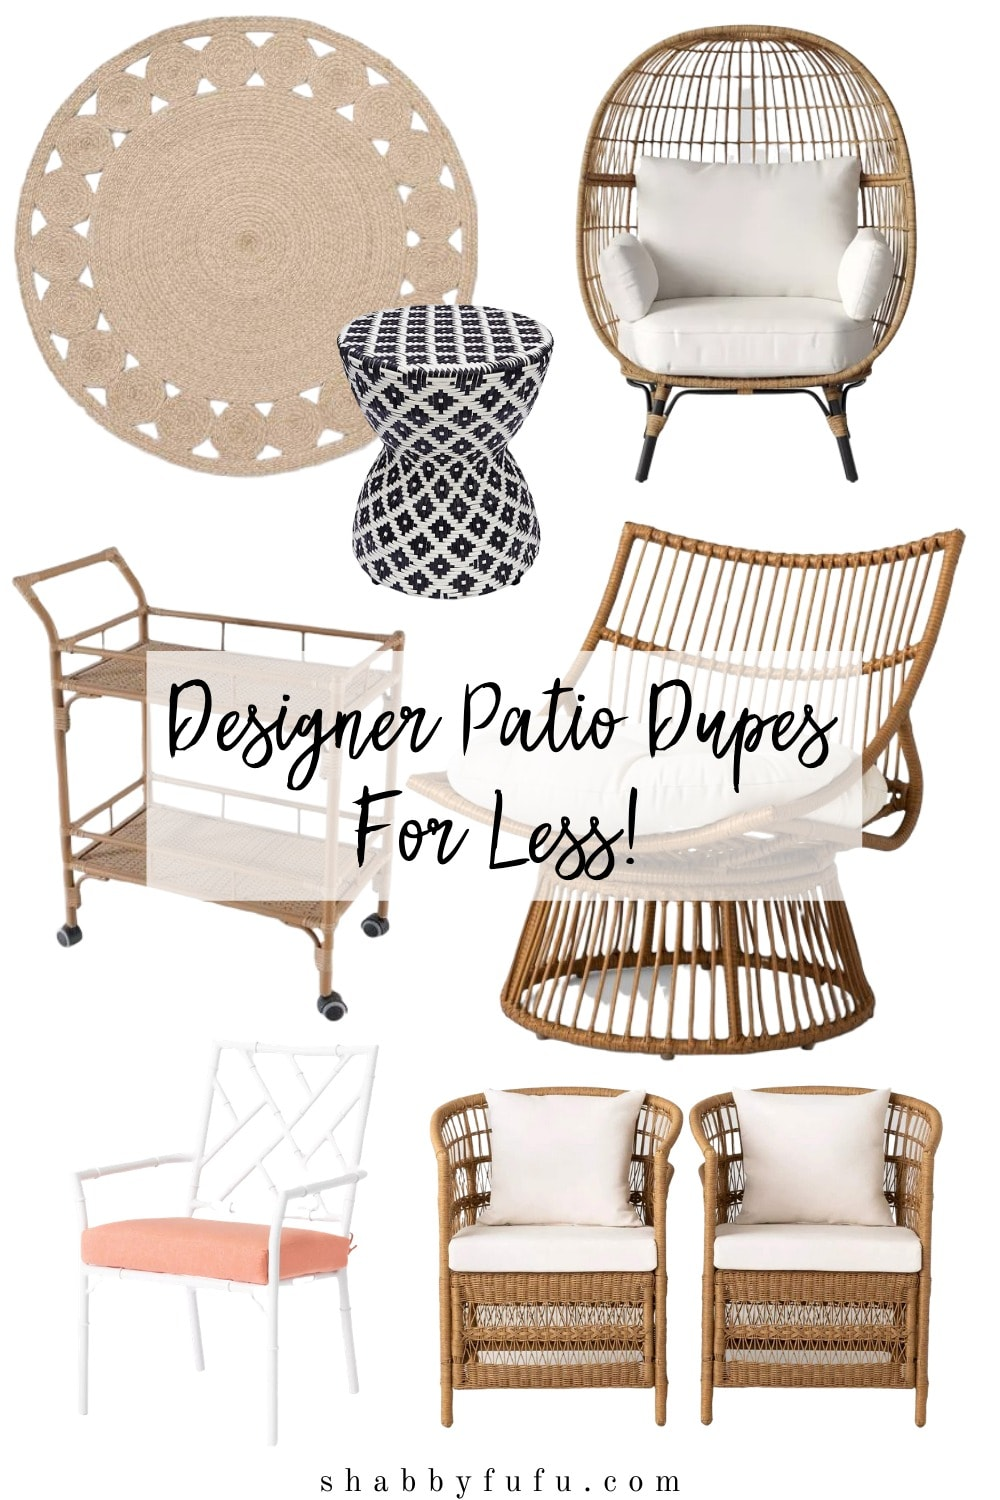 designer patio look for less